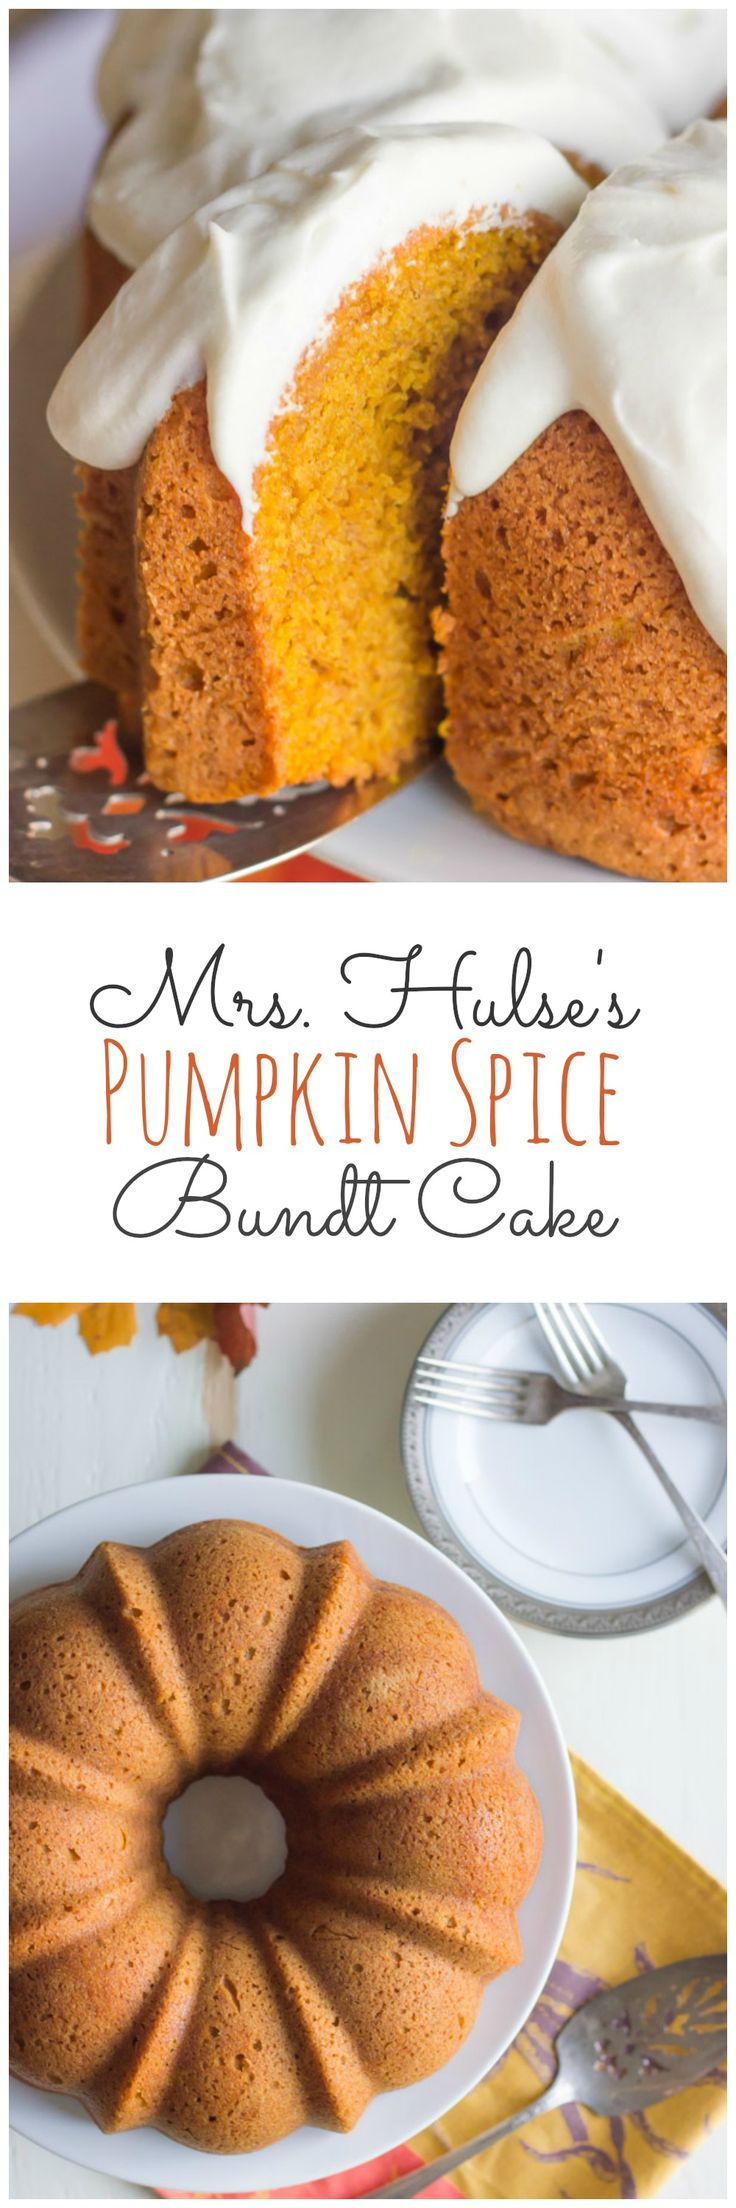 Mrs. Hulse's Pumpkin Spice Bundt Cake. #autumn #Halloween #Thanksgiving